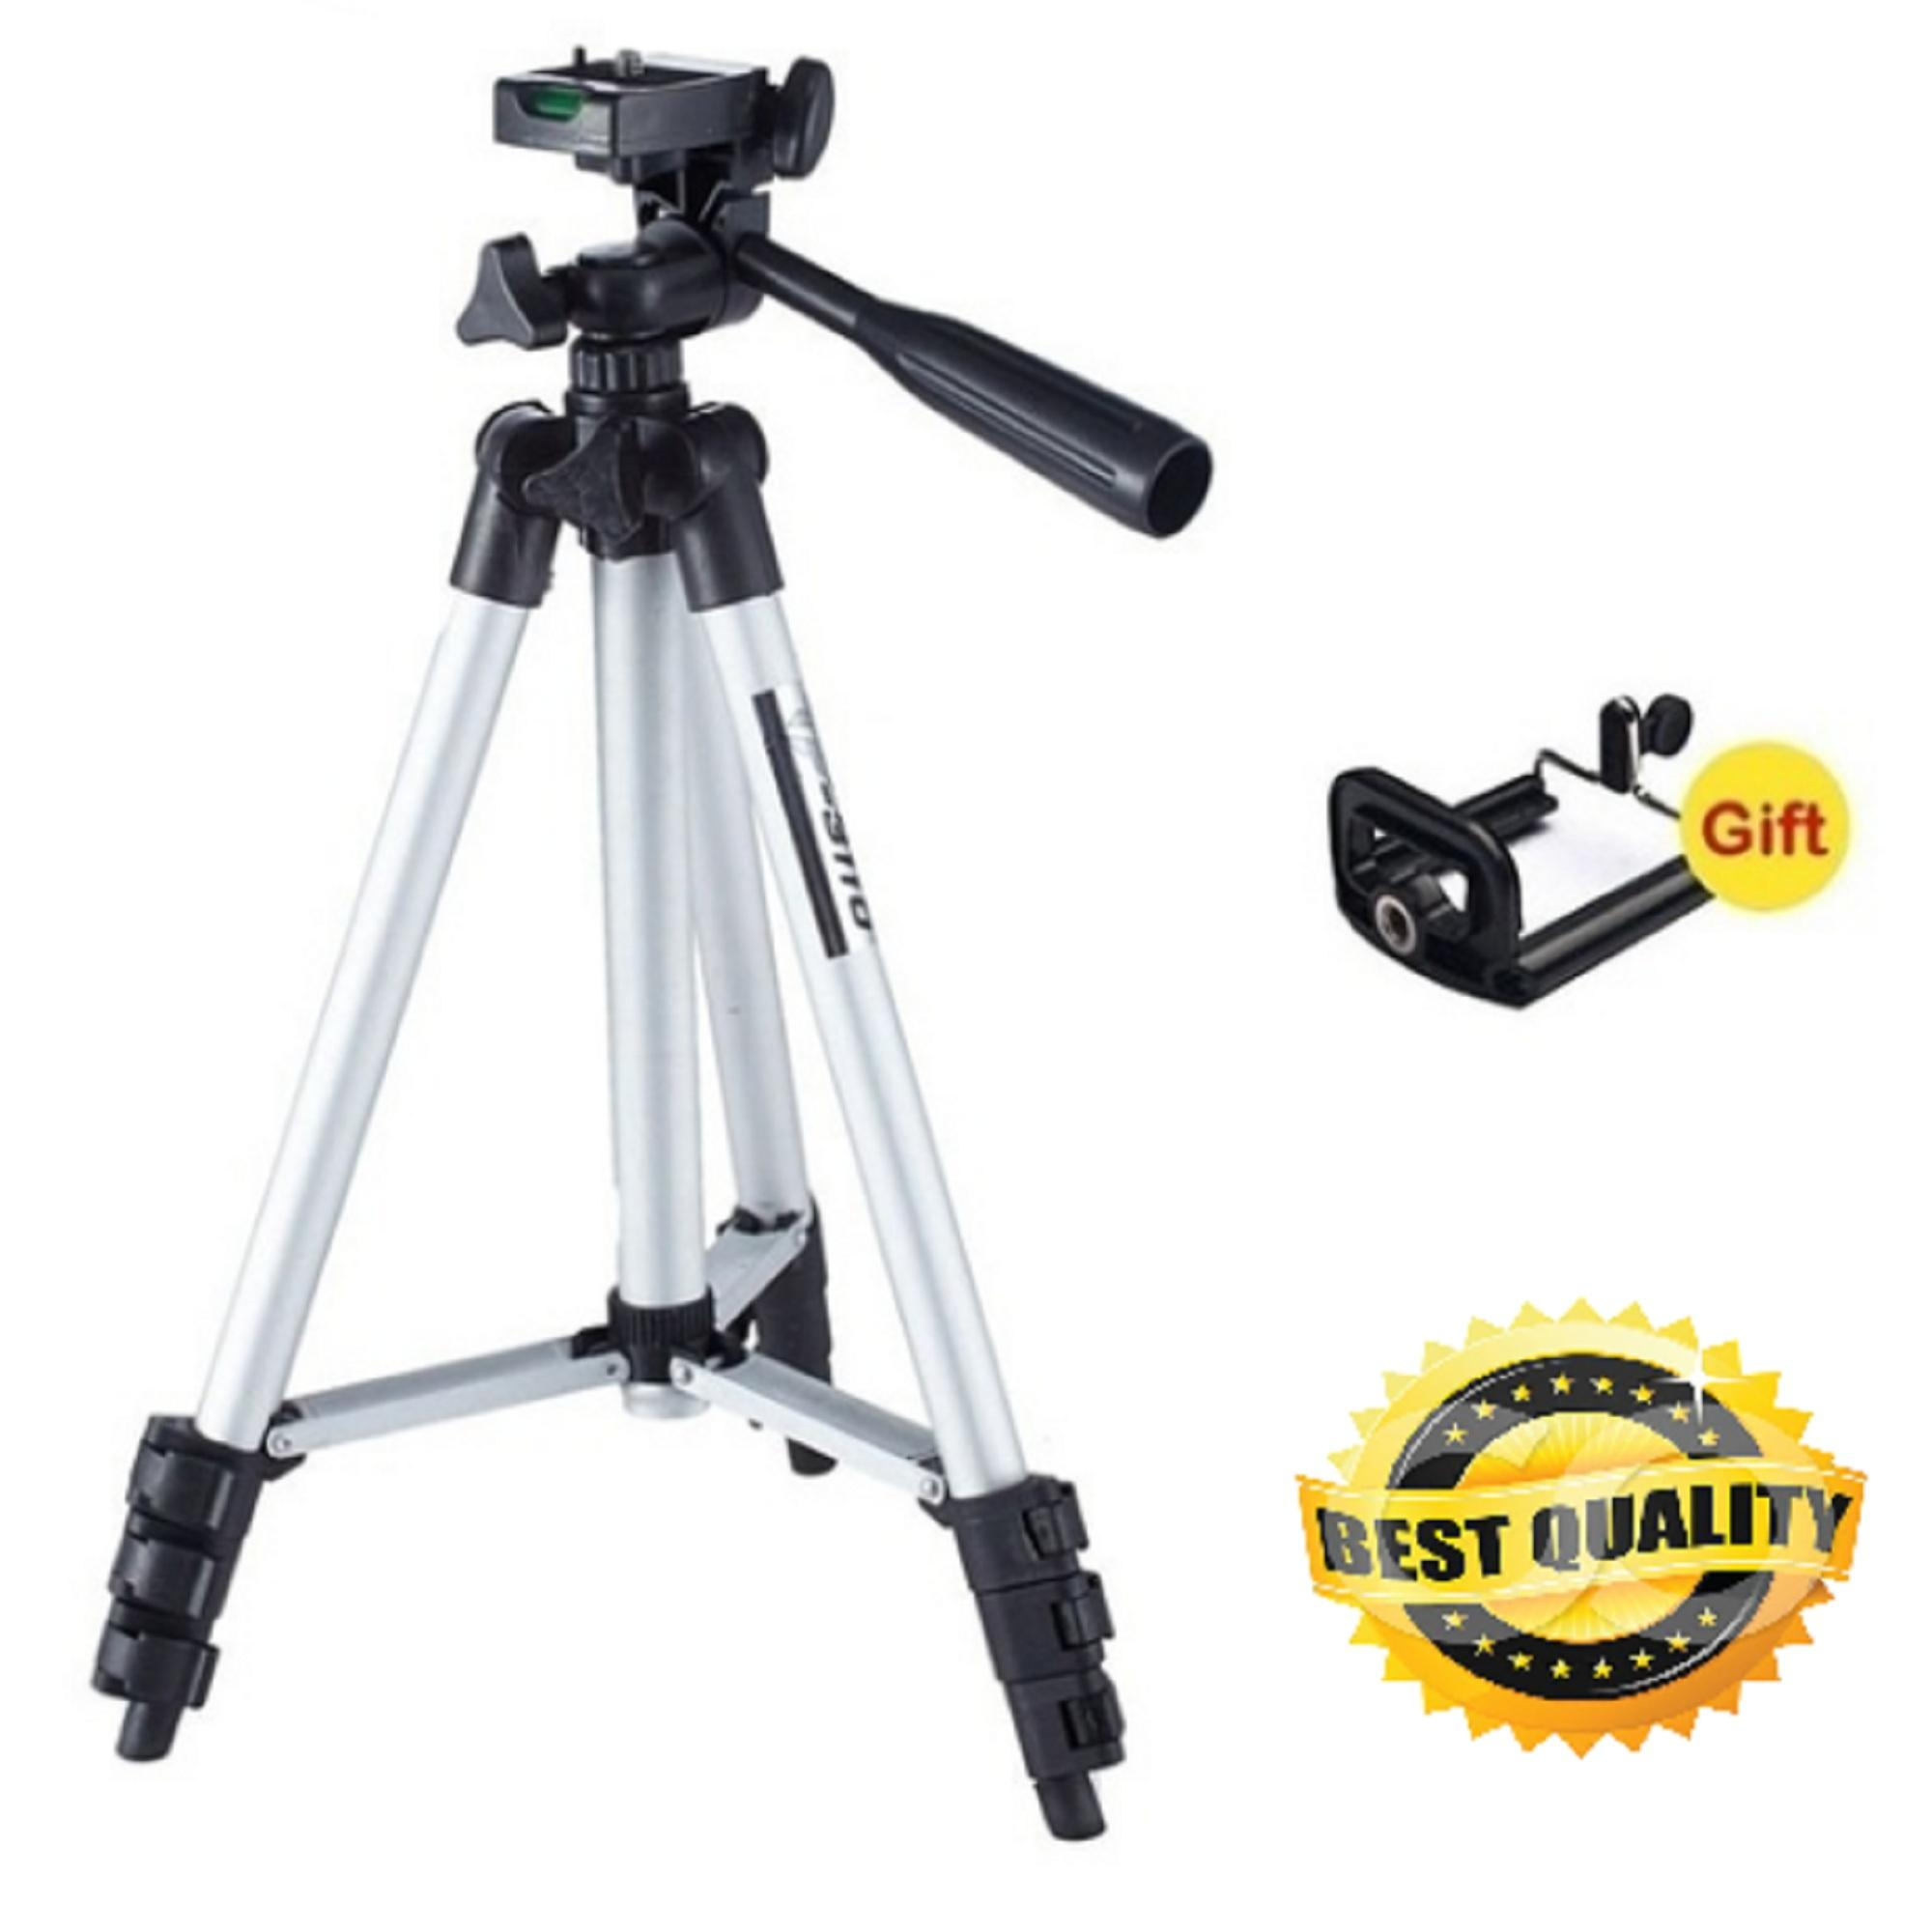 Portable 3110A Aluminium Tripod Monopod Stand For DSLR And Smartphones With  Free Phone Clip Attachment For Video And Photoshoot